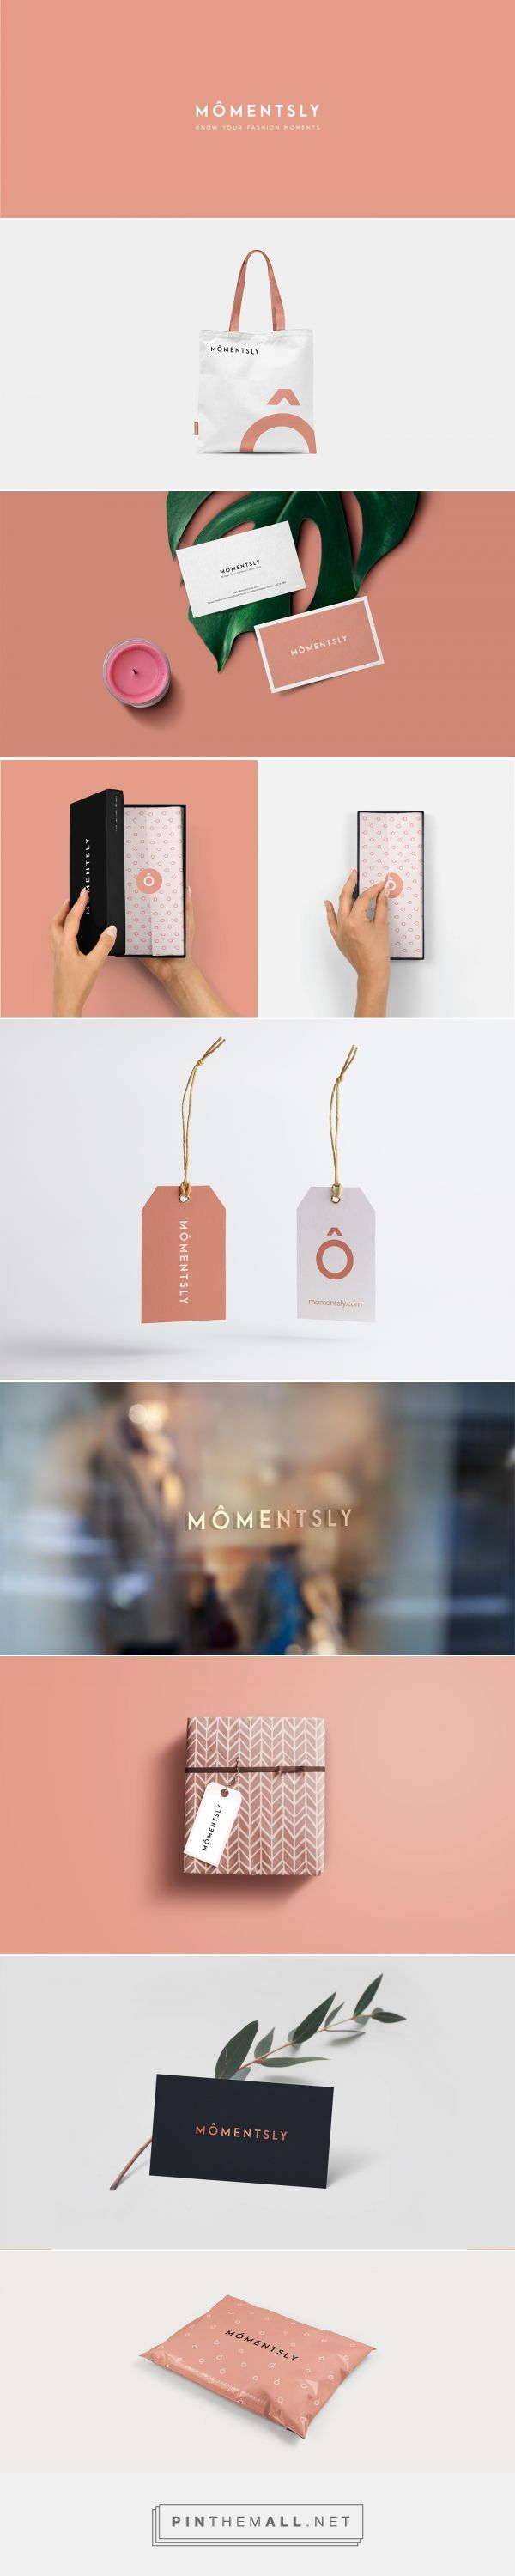 MÔMENTSLY Online Fashion and Beauty Store Branding by Fennec Studios | Fivestar Branding Agency – Design and Branding Agency & Curated Inspiration Gallery #fashionbranding #fashion #branding #brand #design #designinspiration